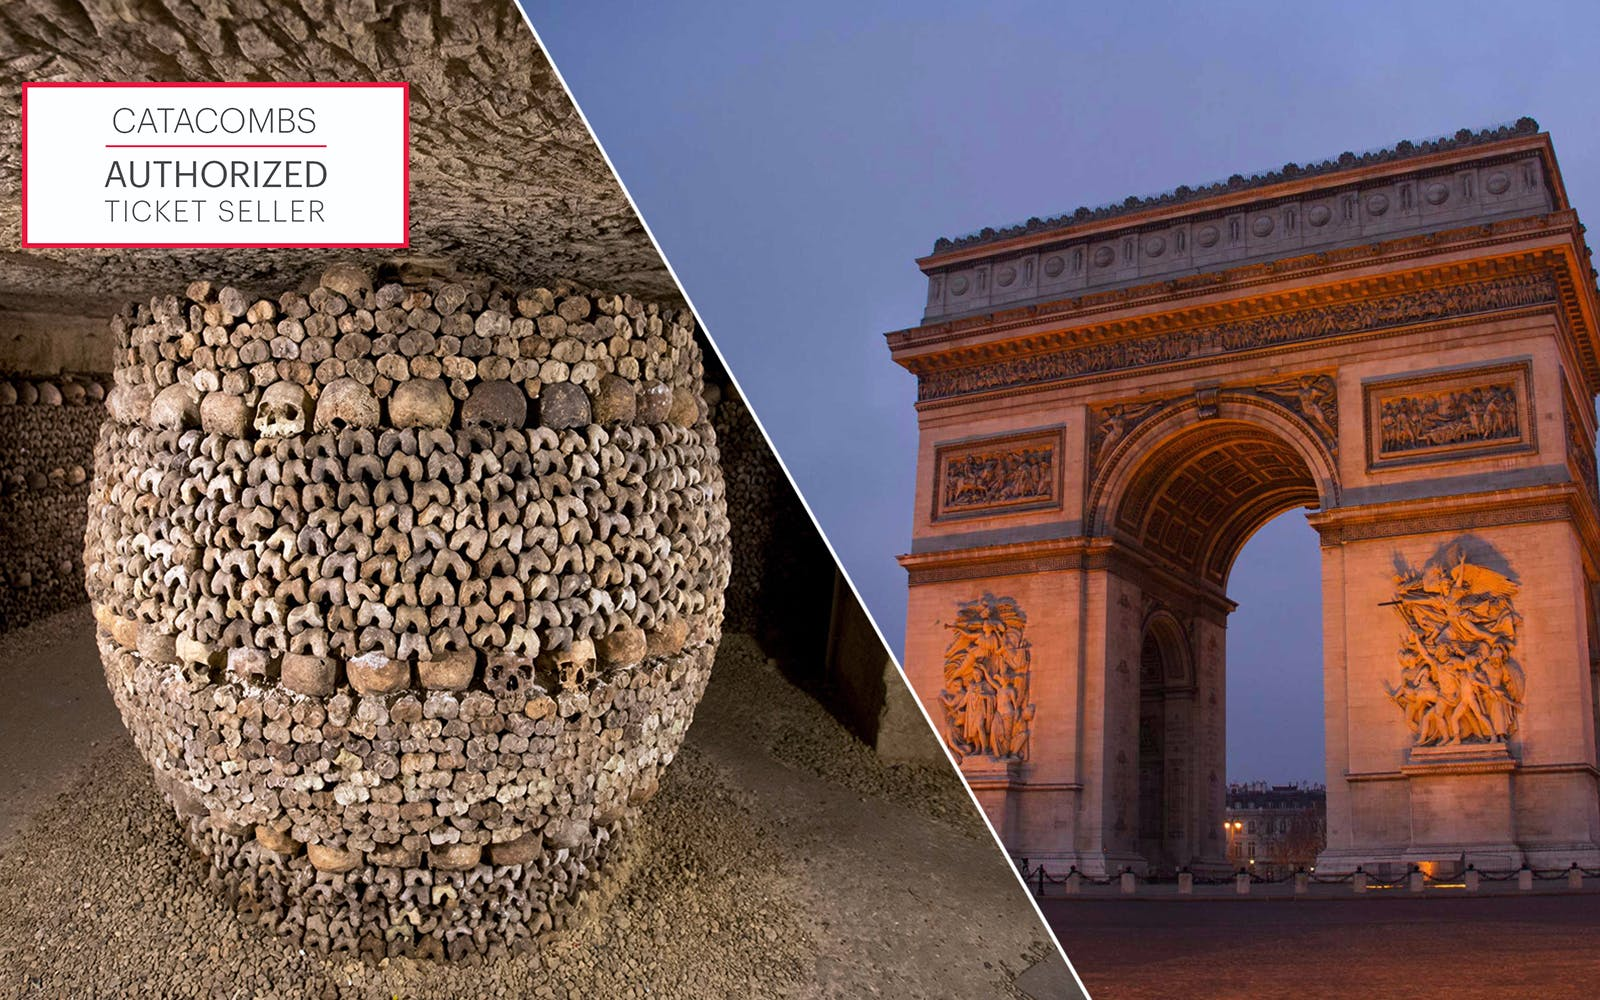 skip the line: catacombs & arc de triomphe rooftop access combo-1